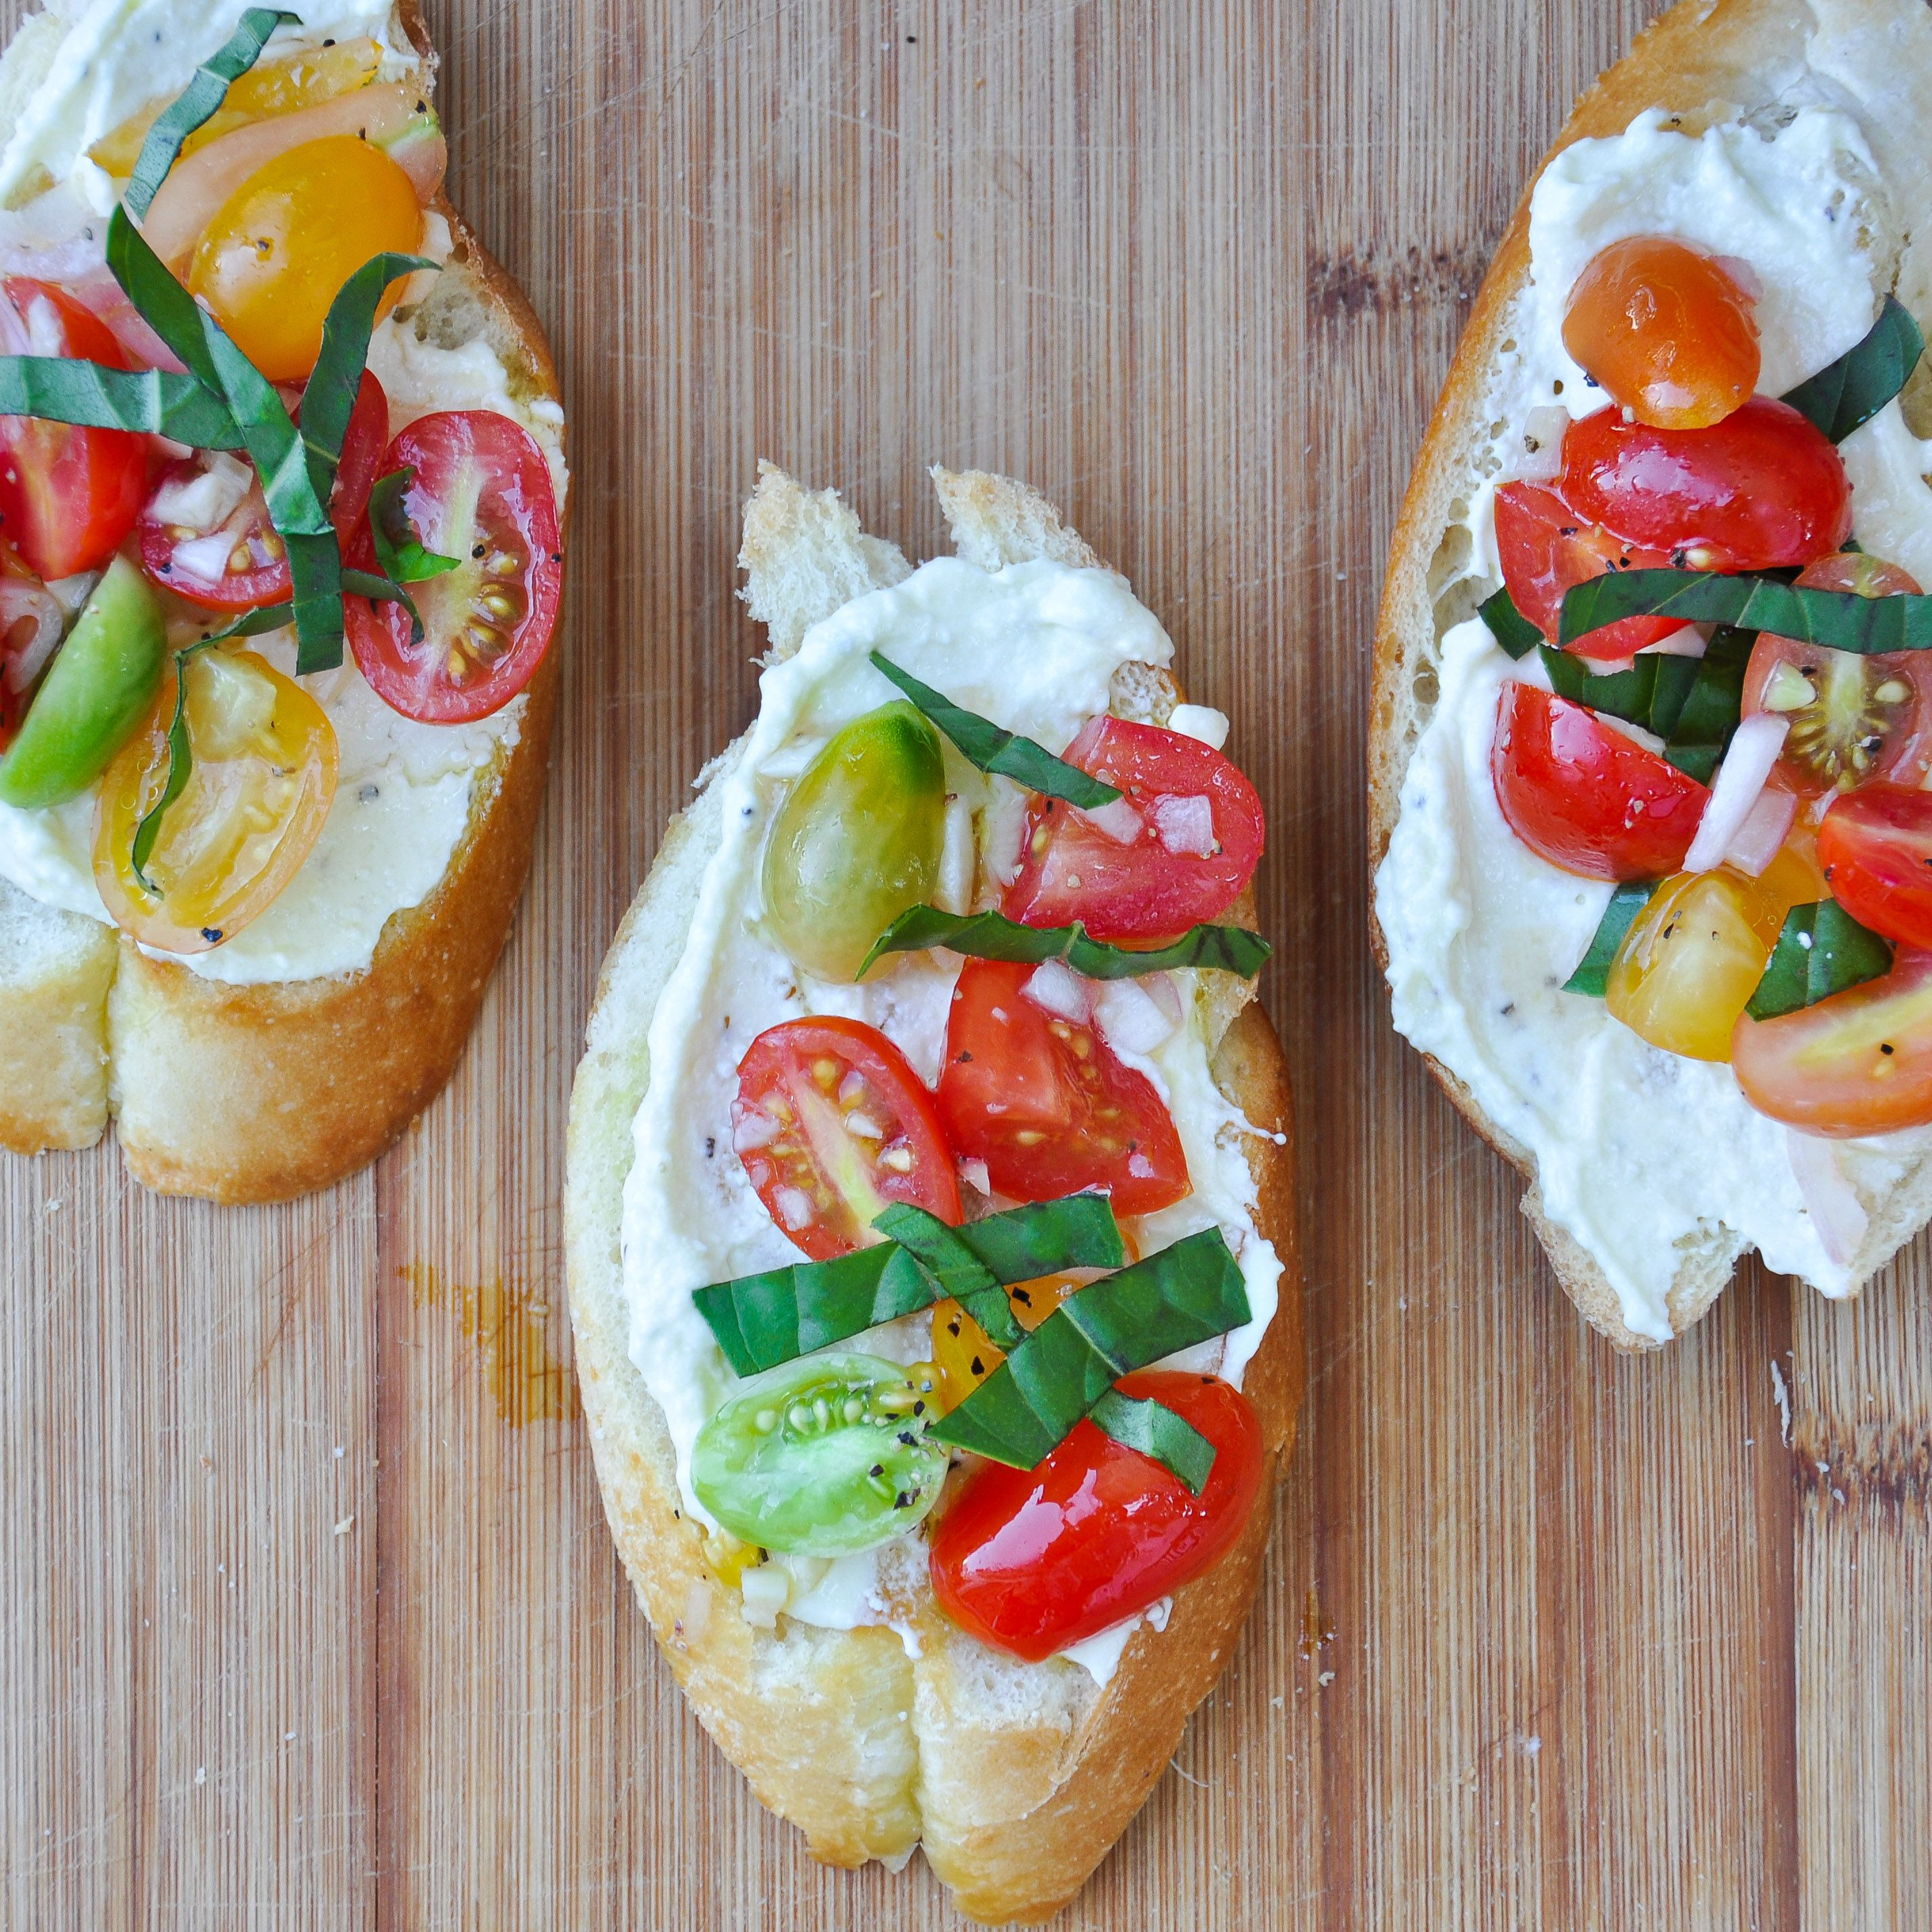 fresh and so flavorful, Crostini with Whipped Feta and Tomatoes makes the perfect spring or summer appetizer or light meal.